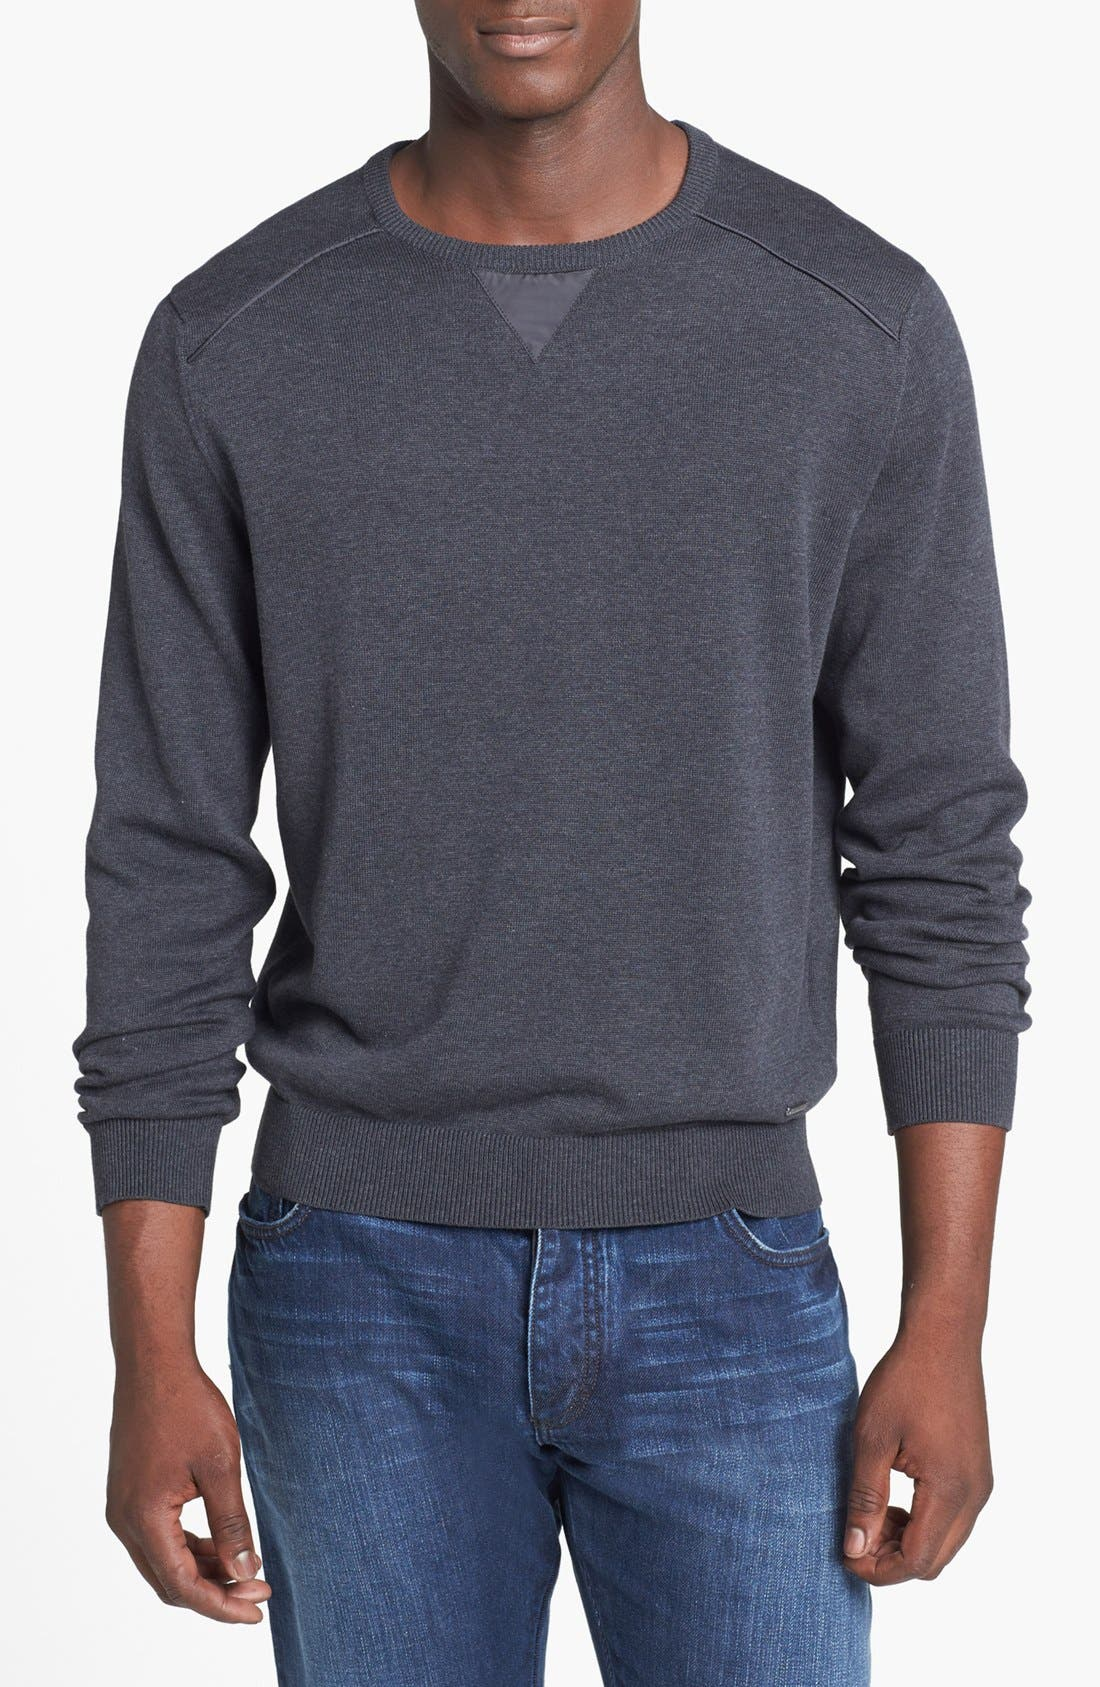 Main Image - Zegna Sport Water Repellent Crew Neck Sweater